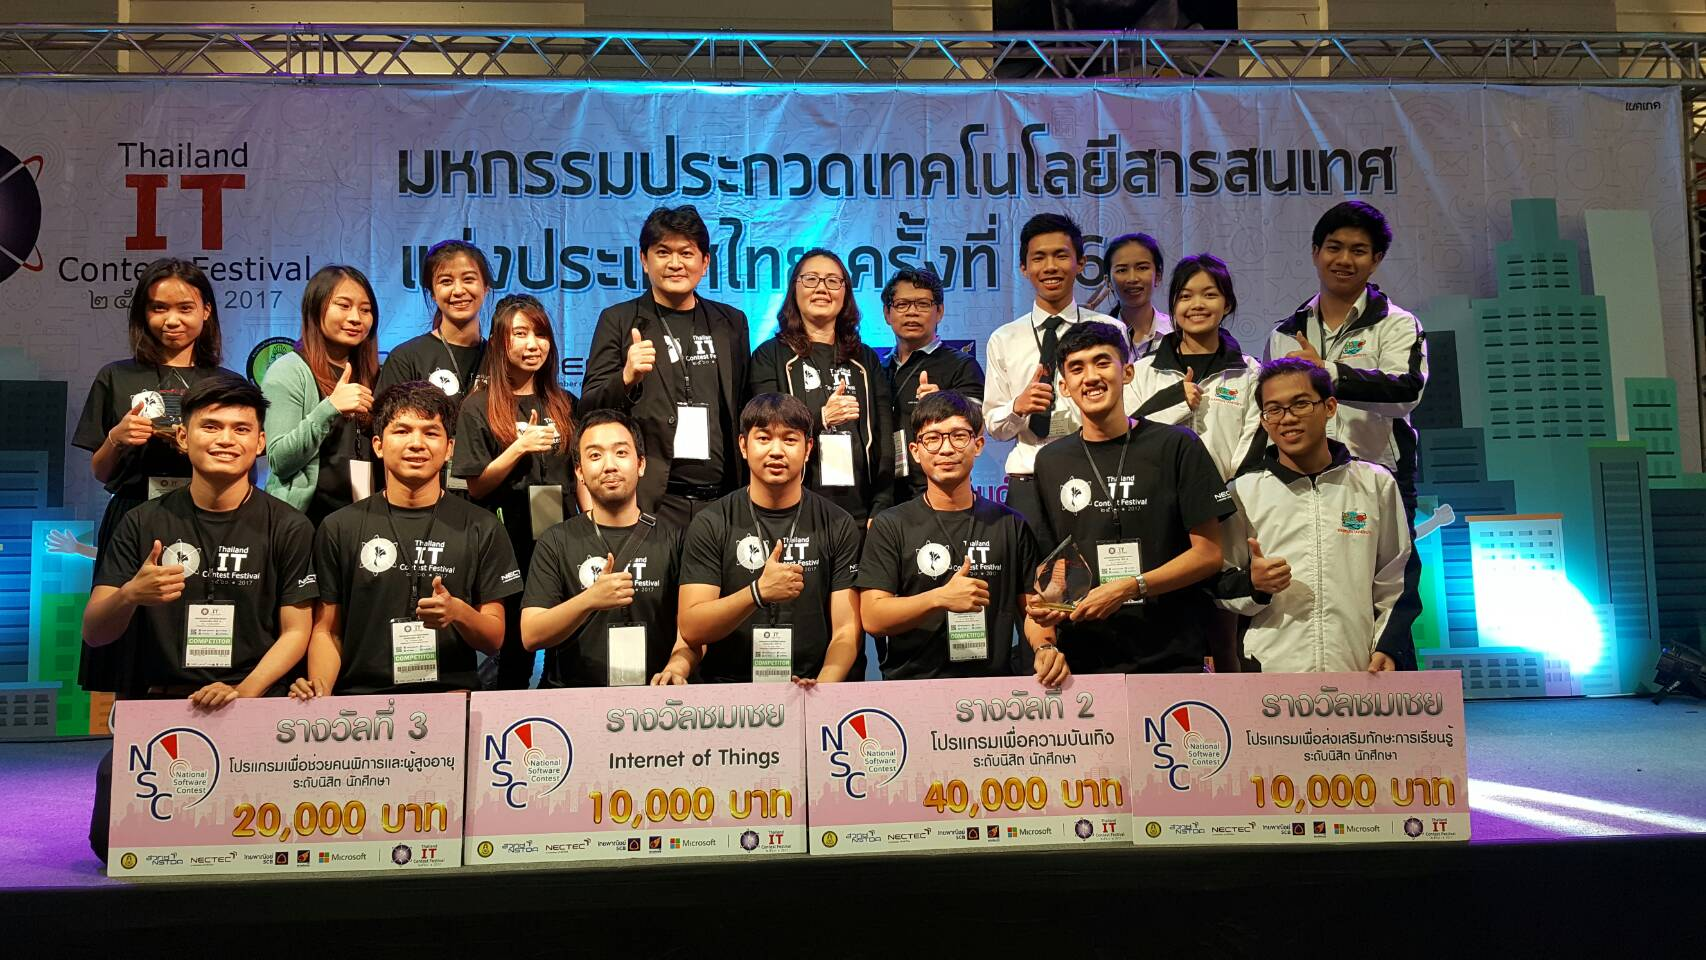 KKU Science students win 4 NSC 2017 prizes held at Fashion Island